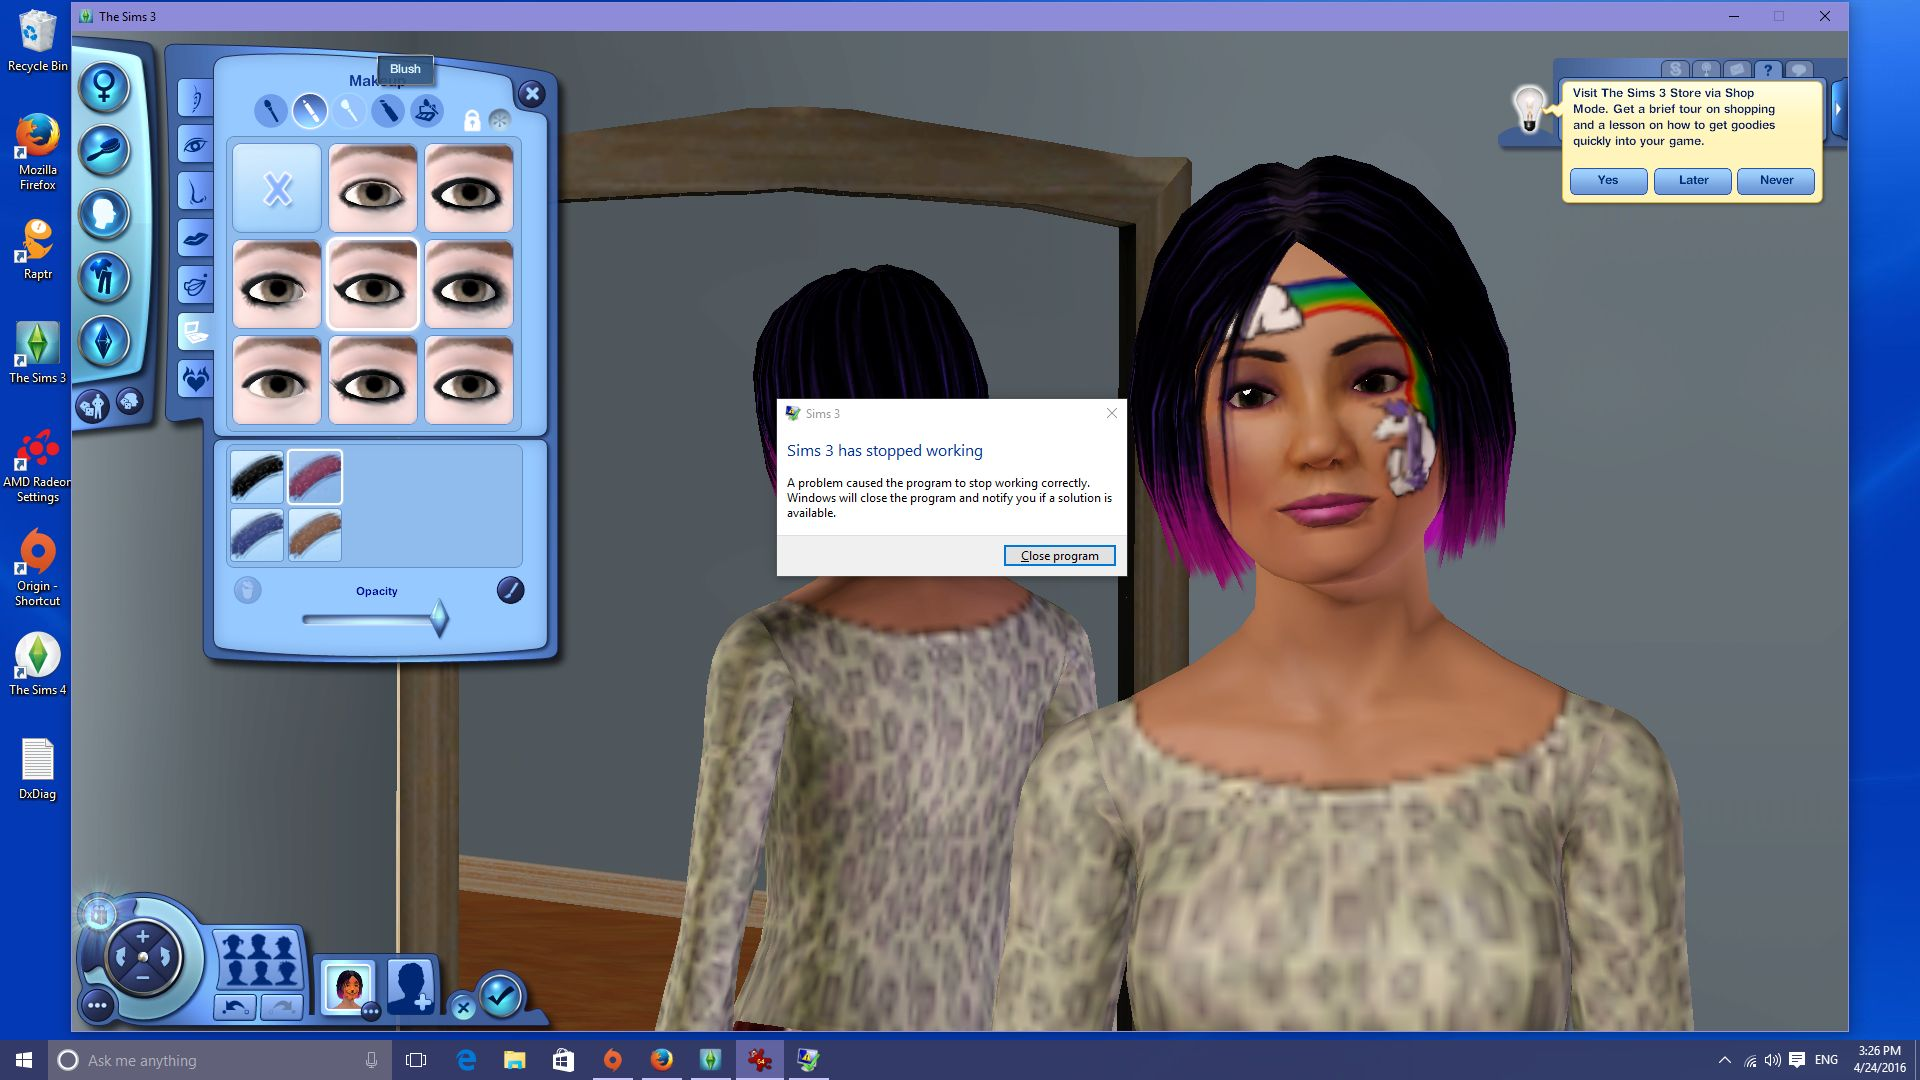 sims 3 download win 10